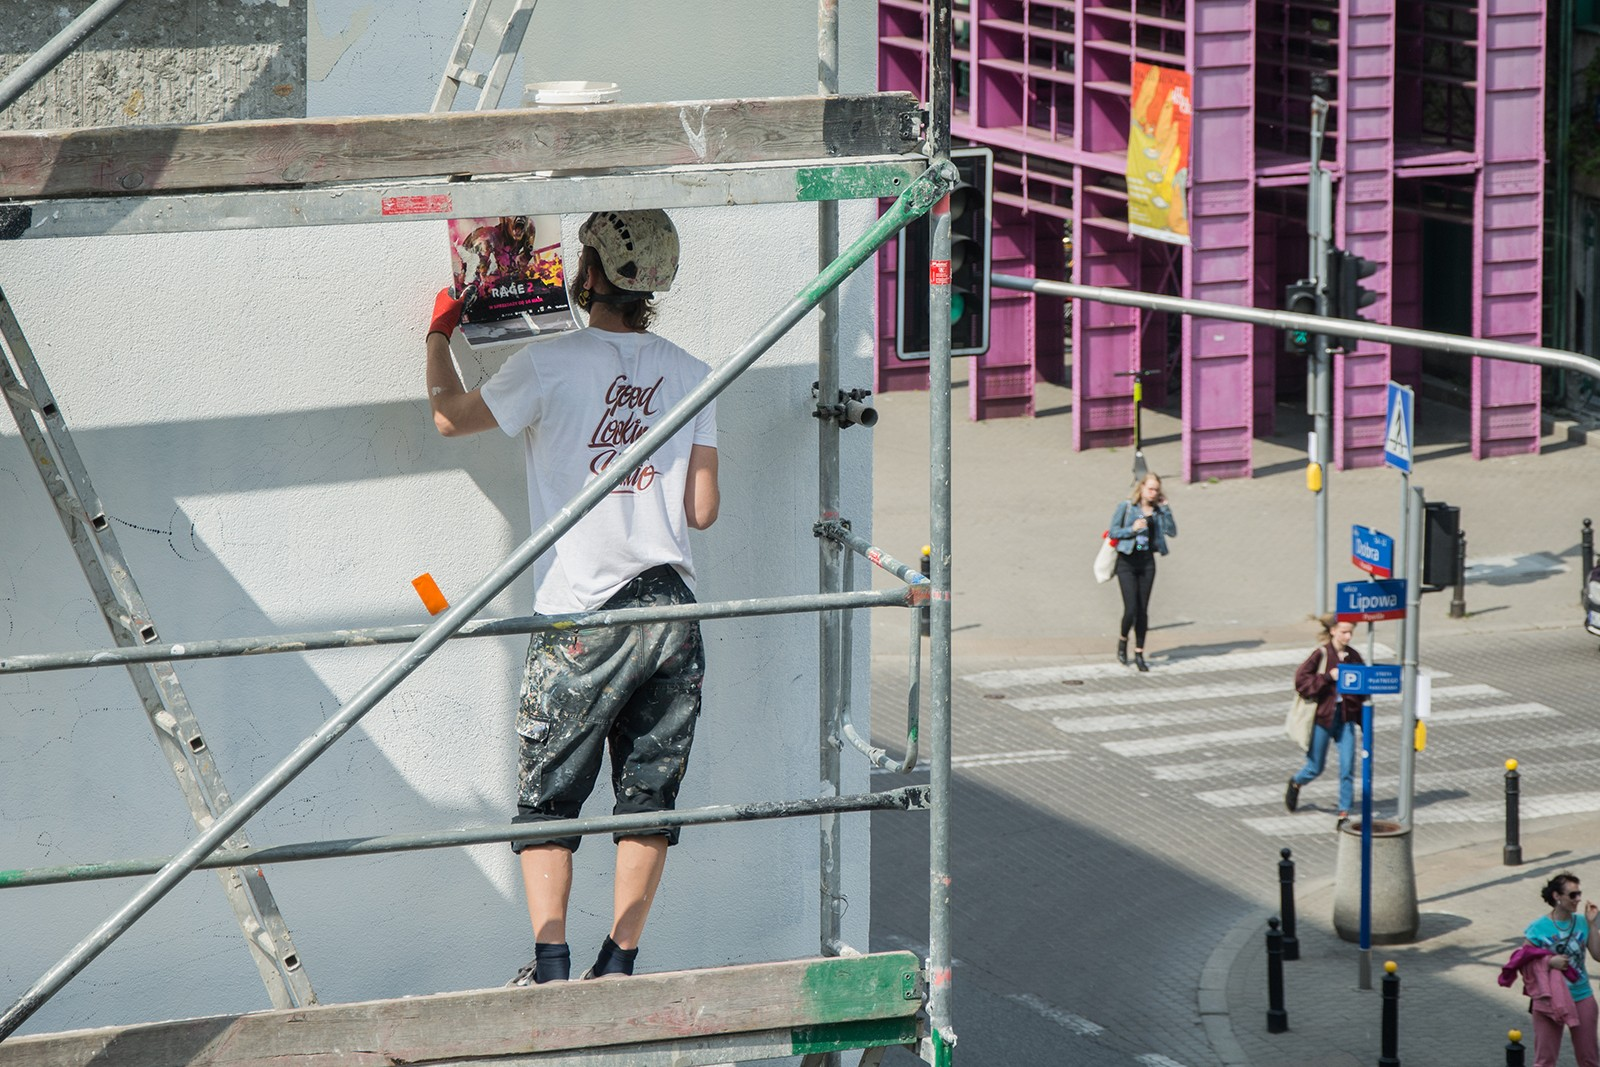 Artists paints advertisement mural Rage 2 near Dobra 53 street in Warsaw | Rage 2 | Portfolio